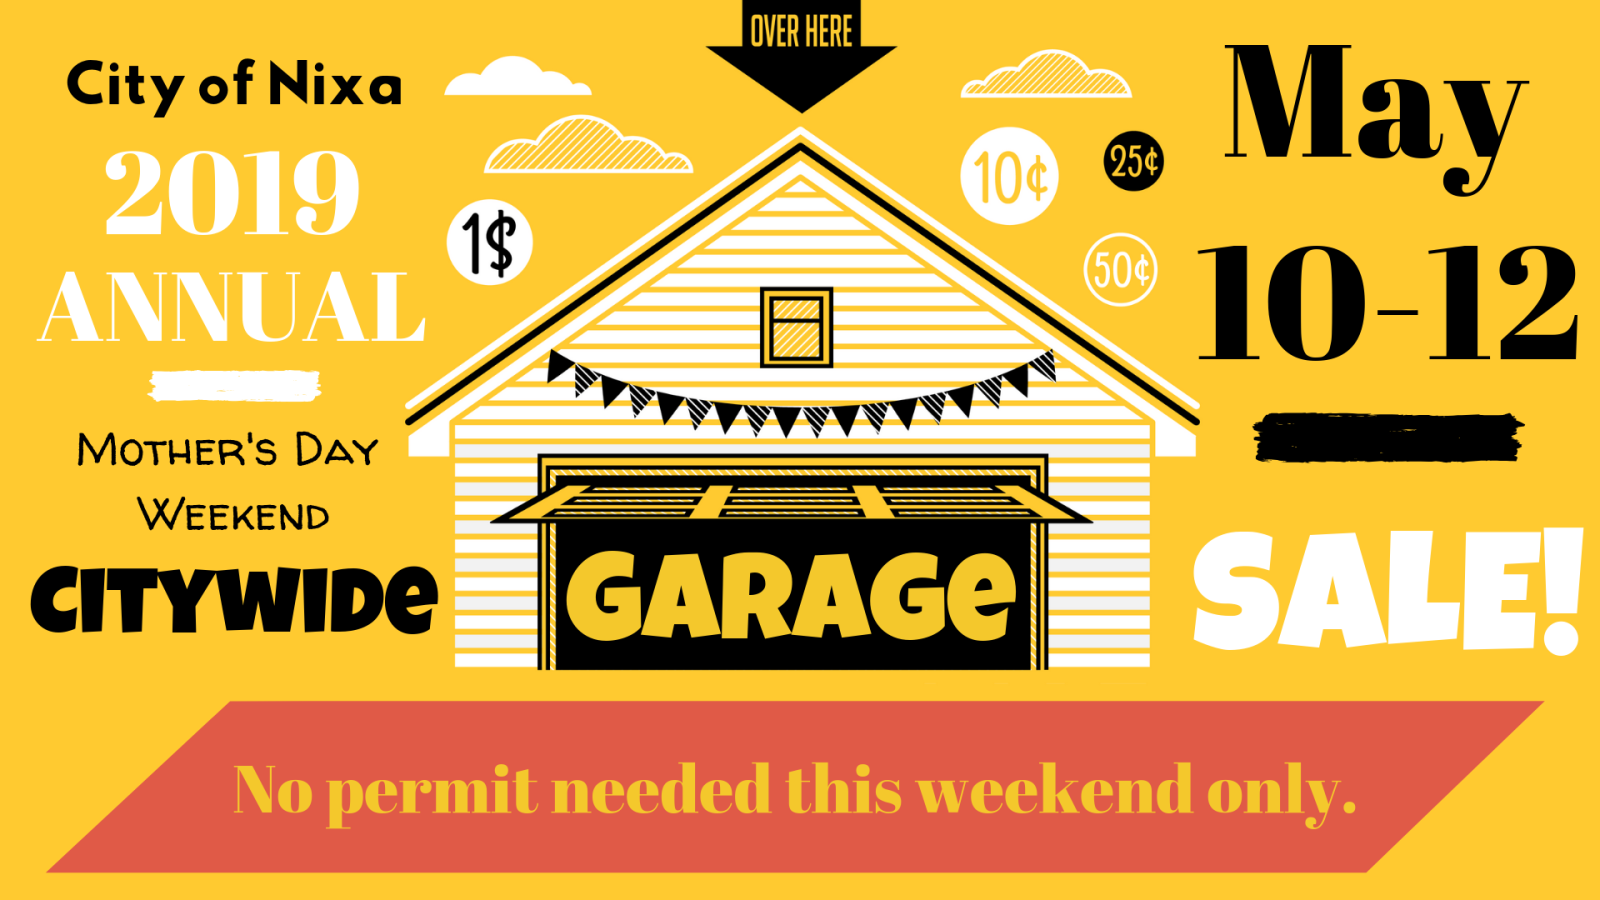 2019 Citywide Garage Sale